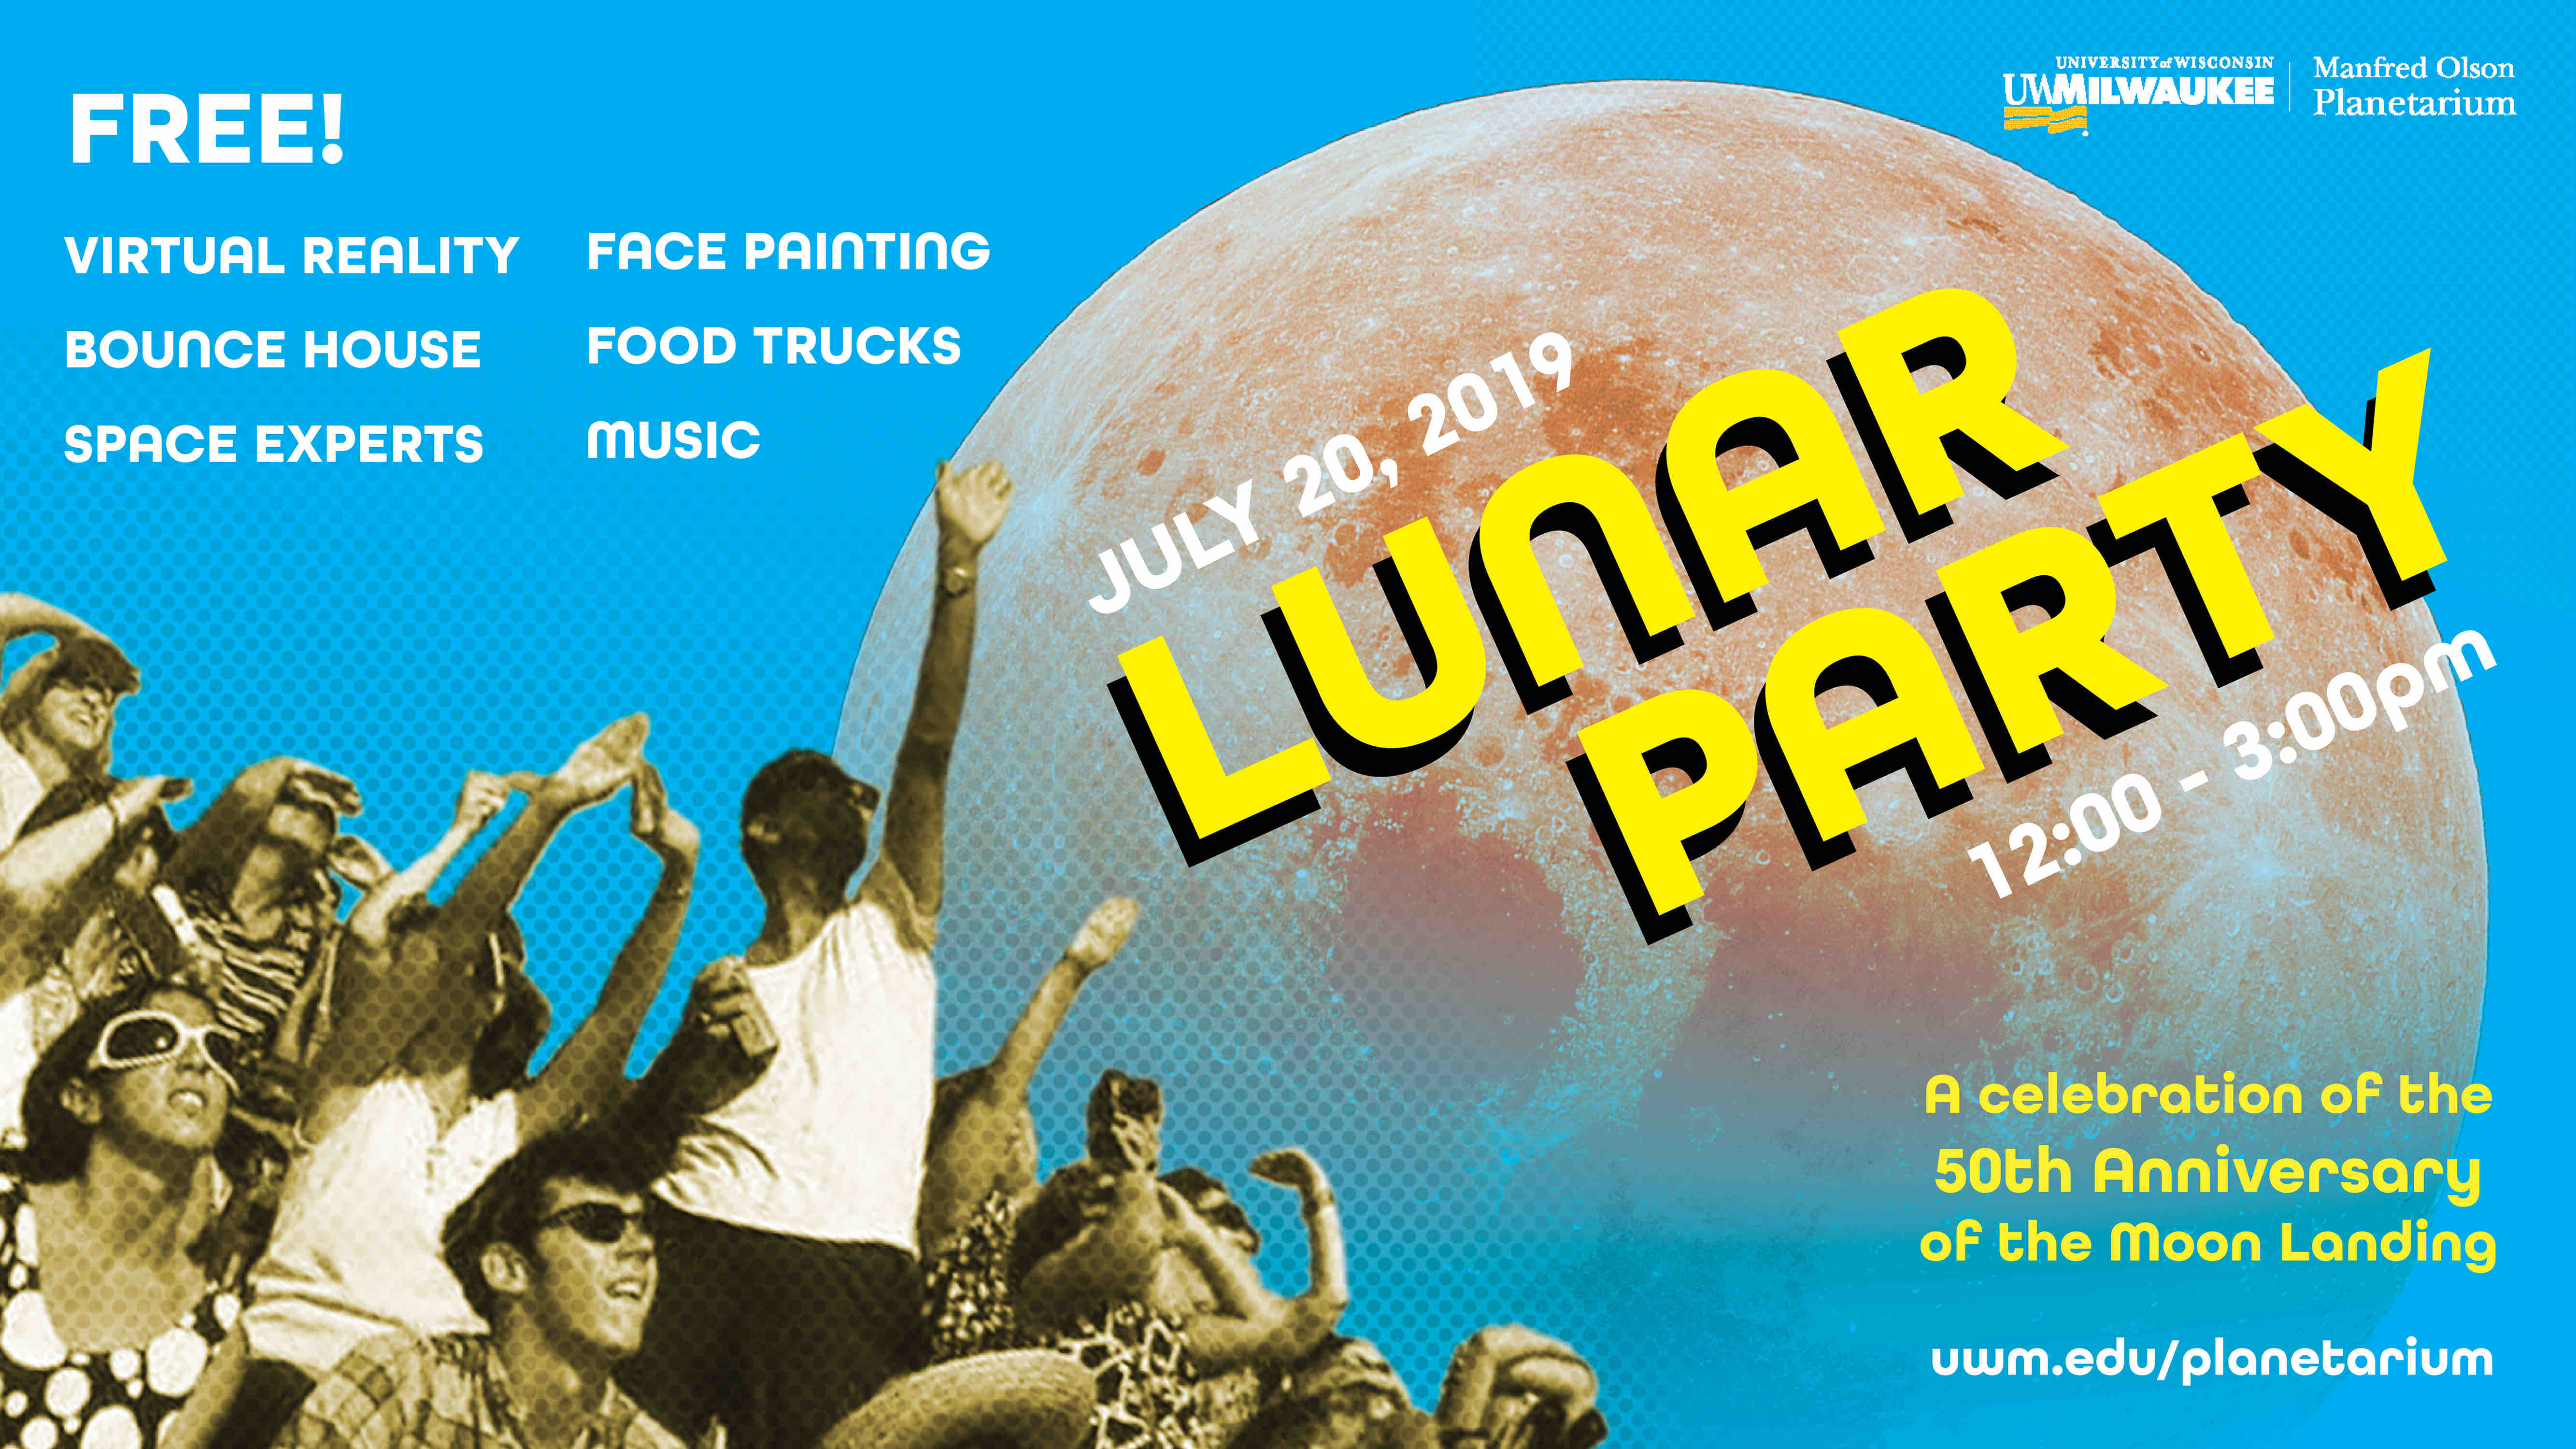 Lunar Party: July 20, 2019 at 12 pm